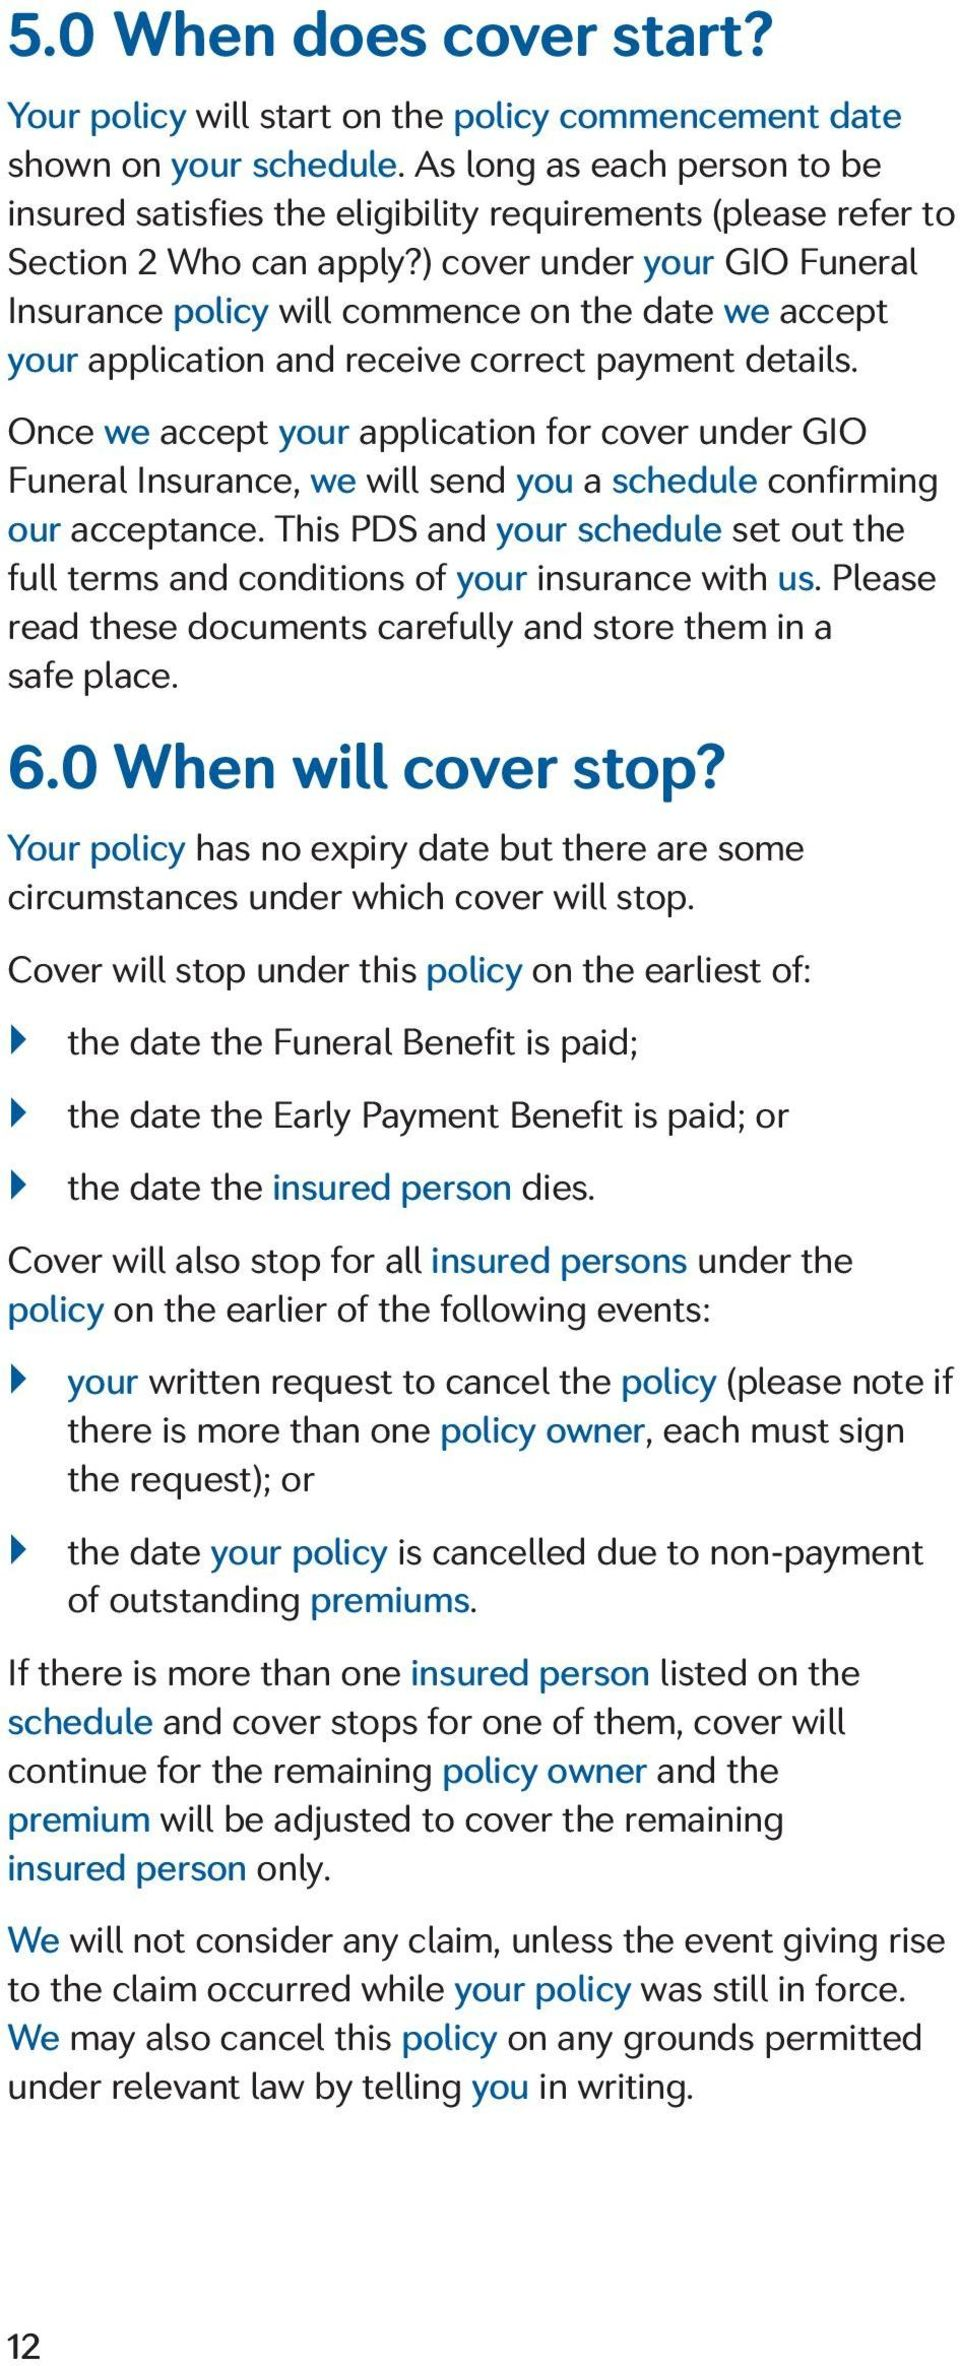 ) cover under your GIO Funeral Insurance policy will commence on the date we accept your application and receive correct payment details.